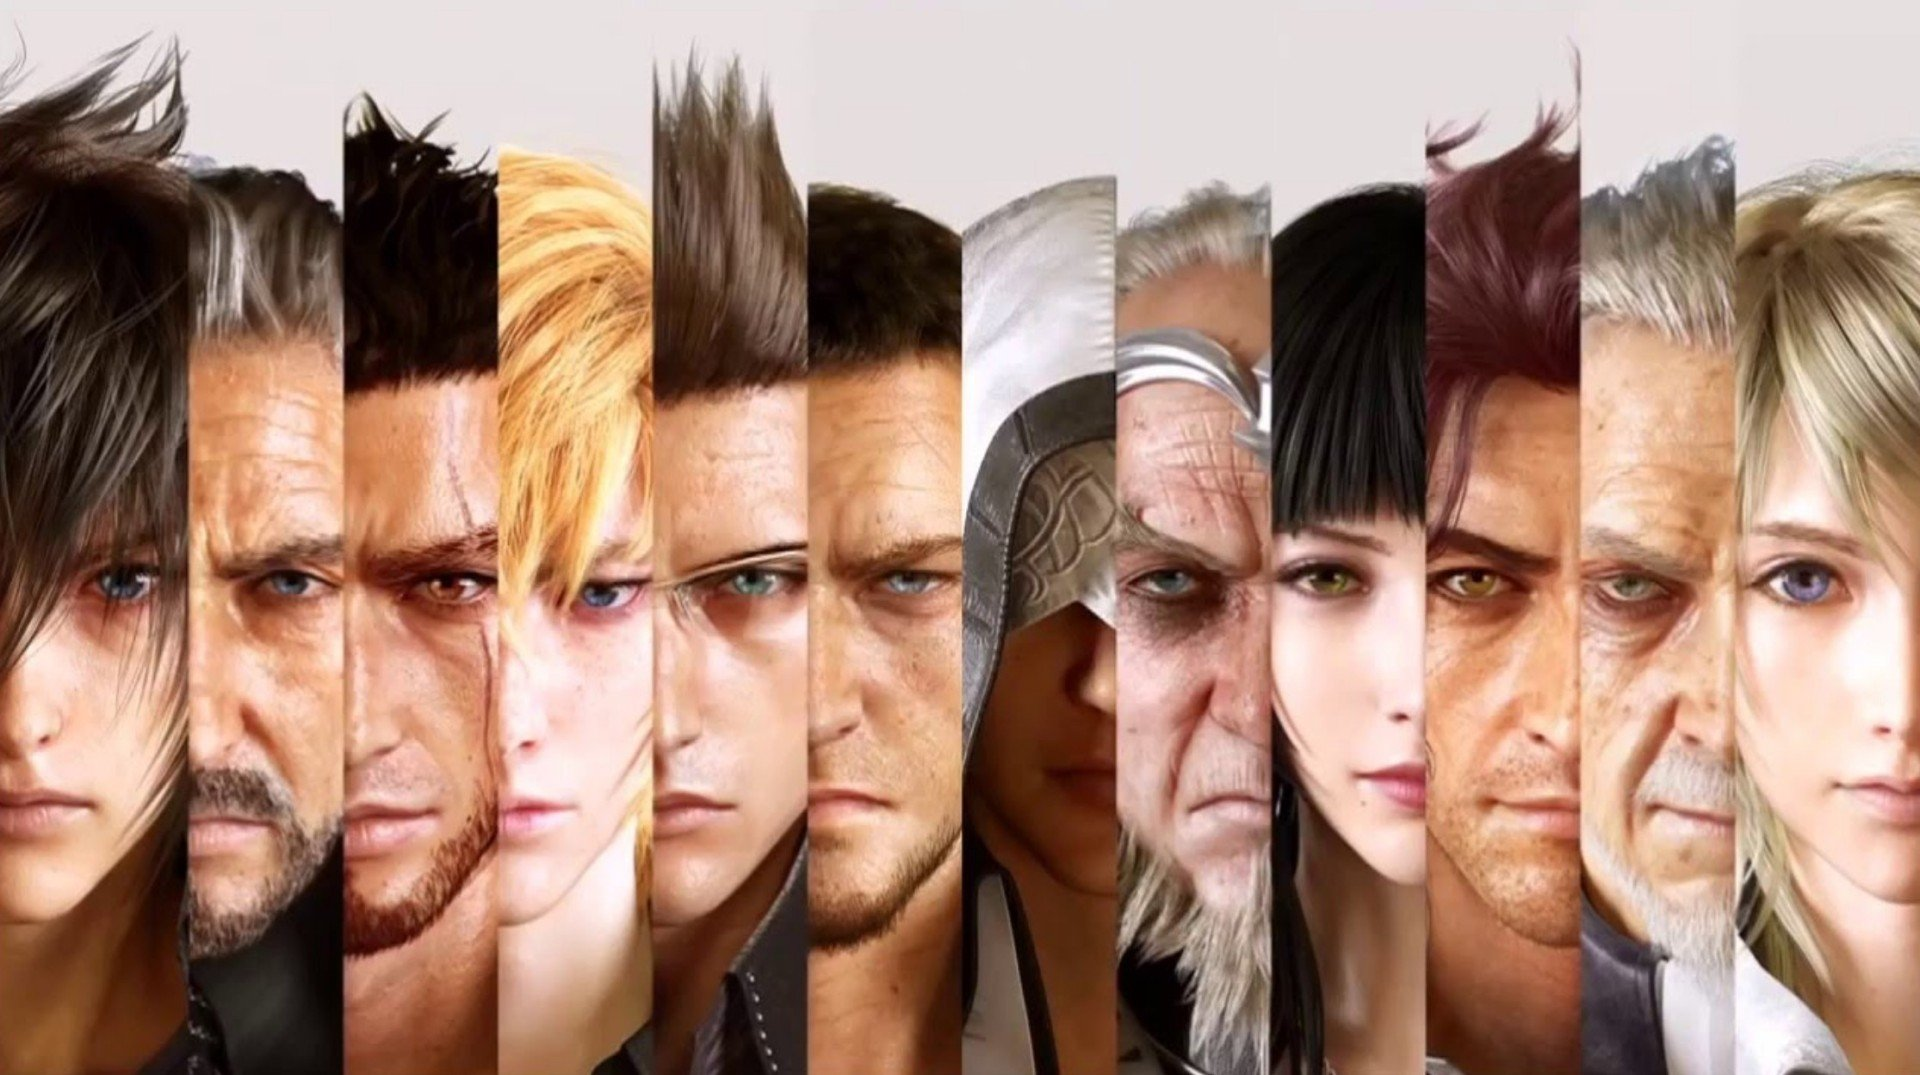 Game review: FFXV New Empire is addictive enough, but if you